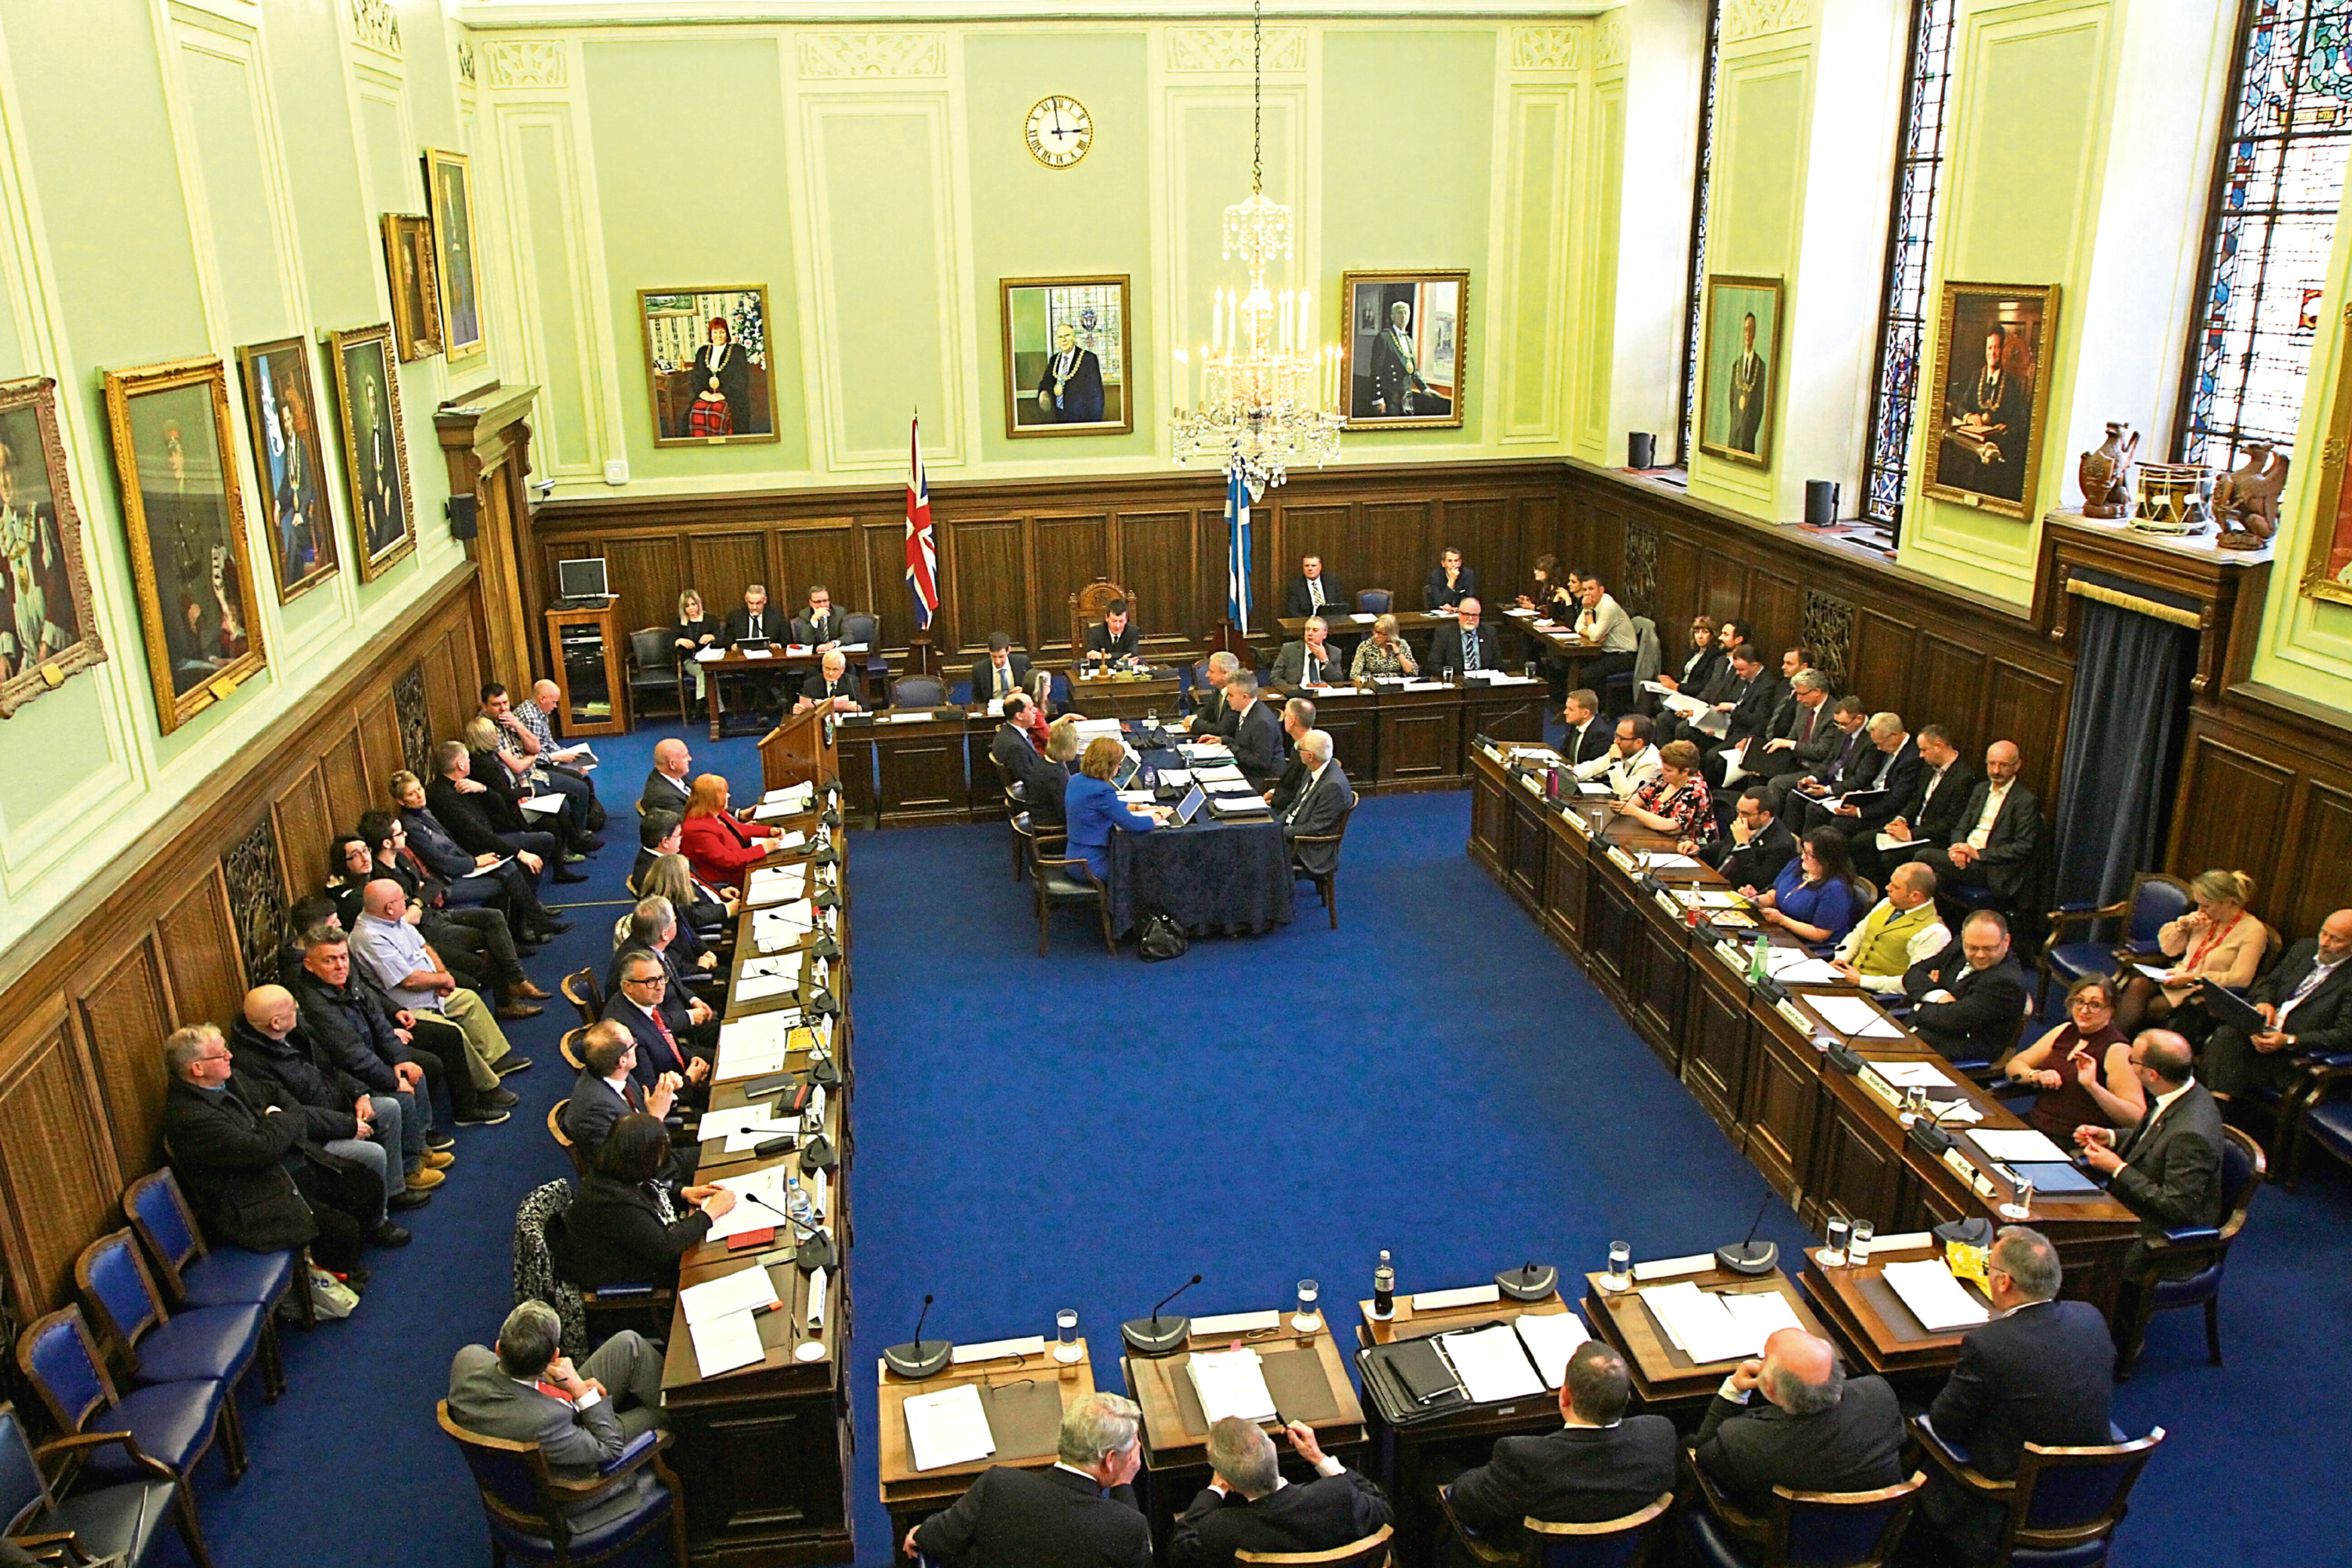 The meeting will take place today in City Chambers